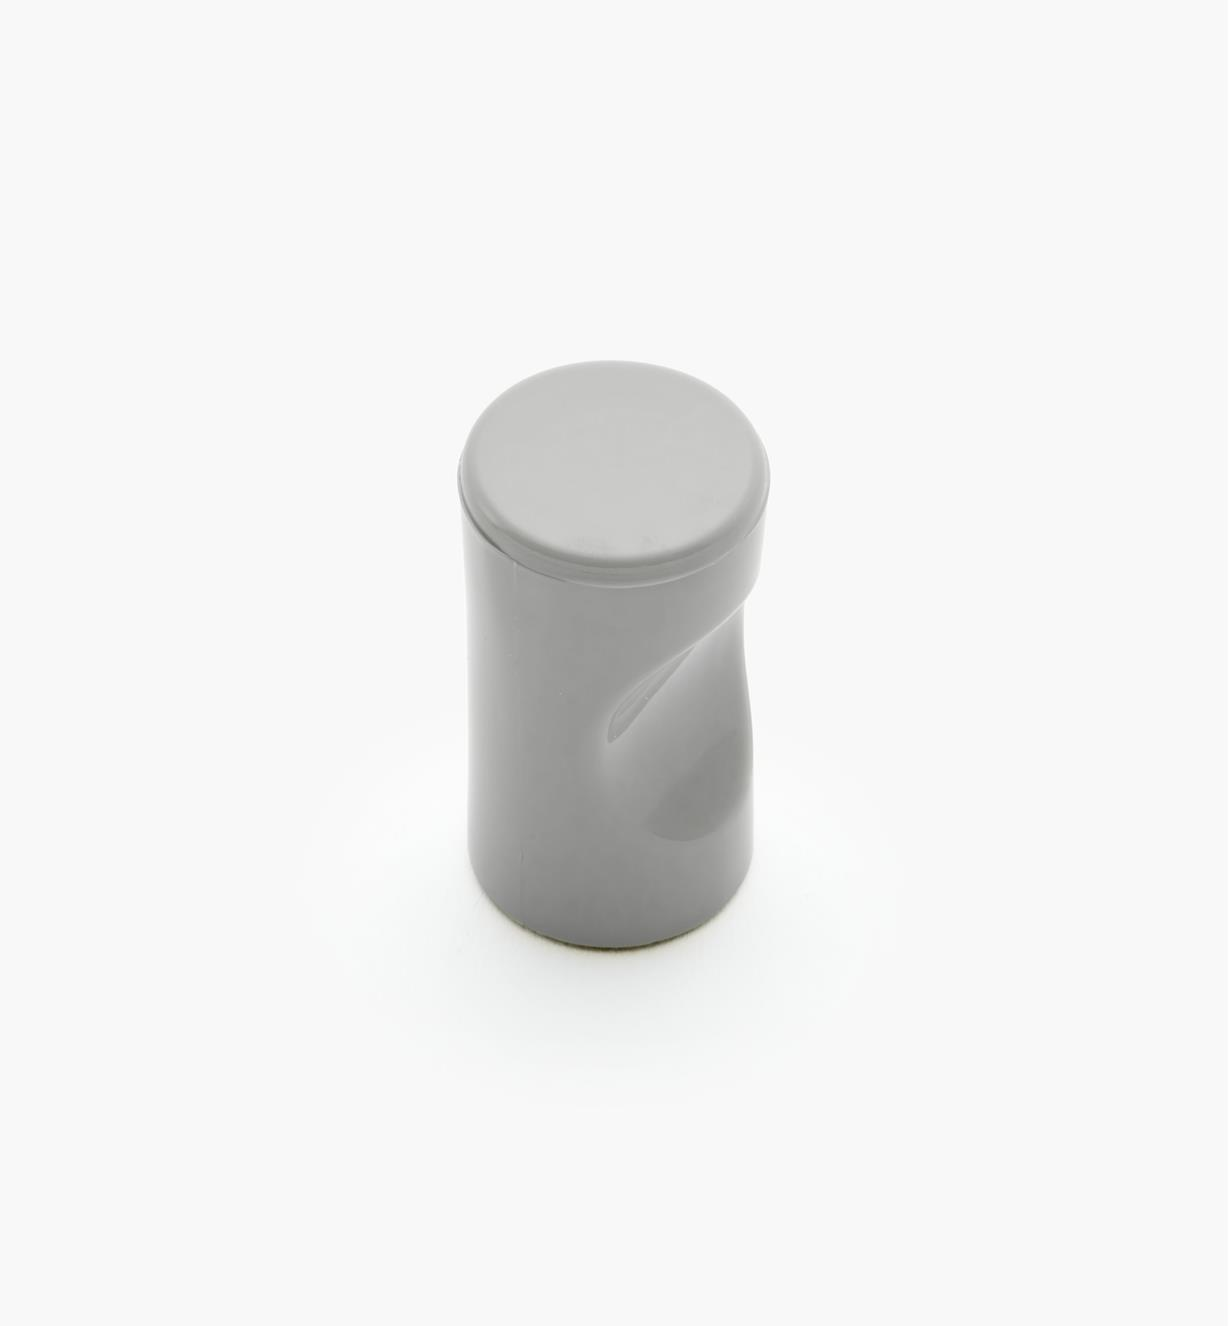 "01W4514 - 13mm x 1 1/8"" Gray Notched Pull/Knob"